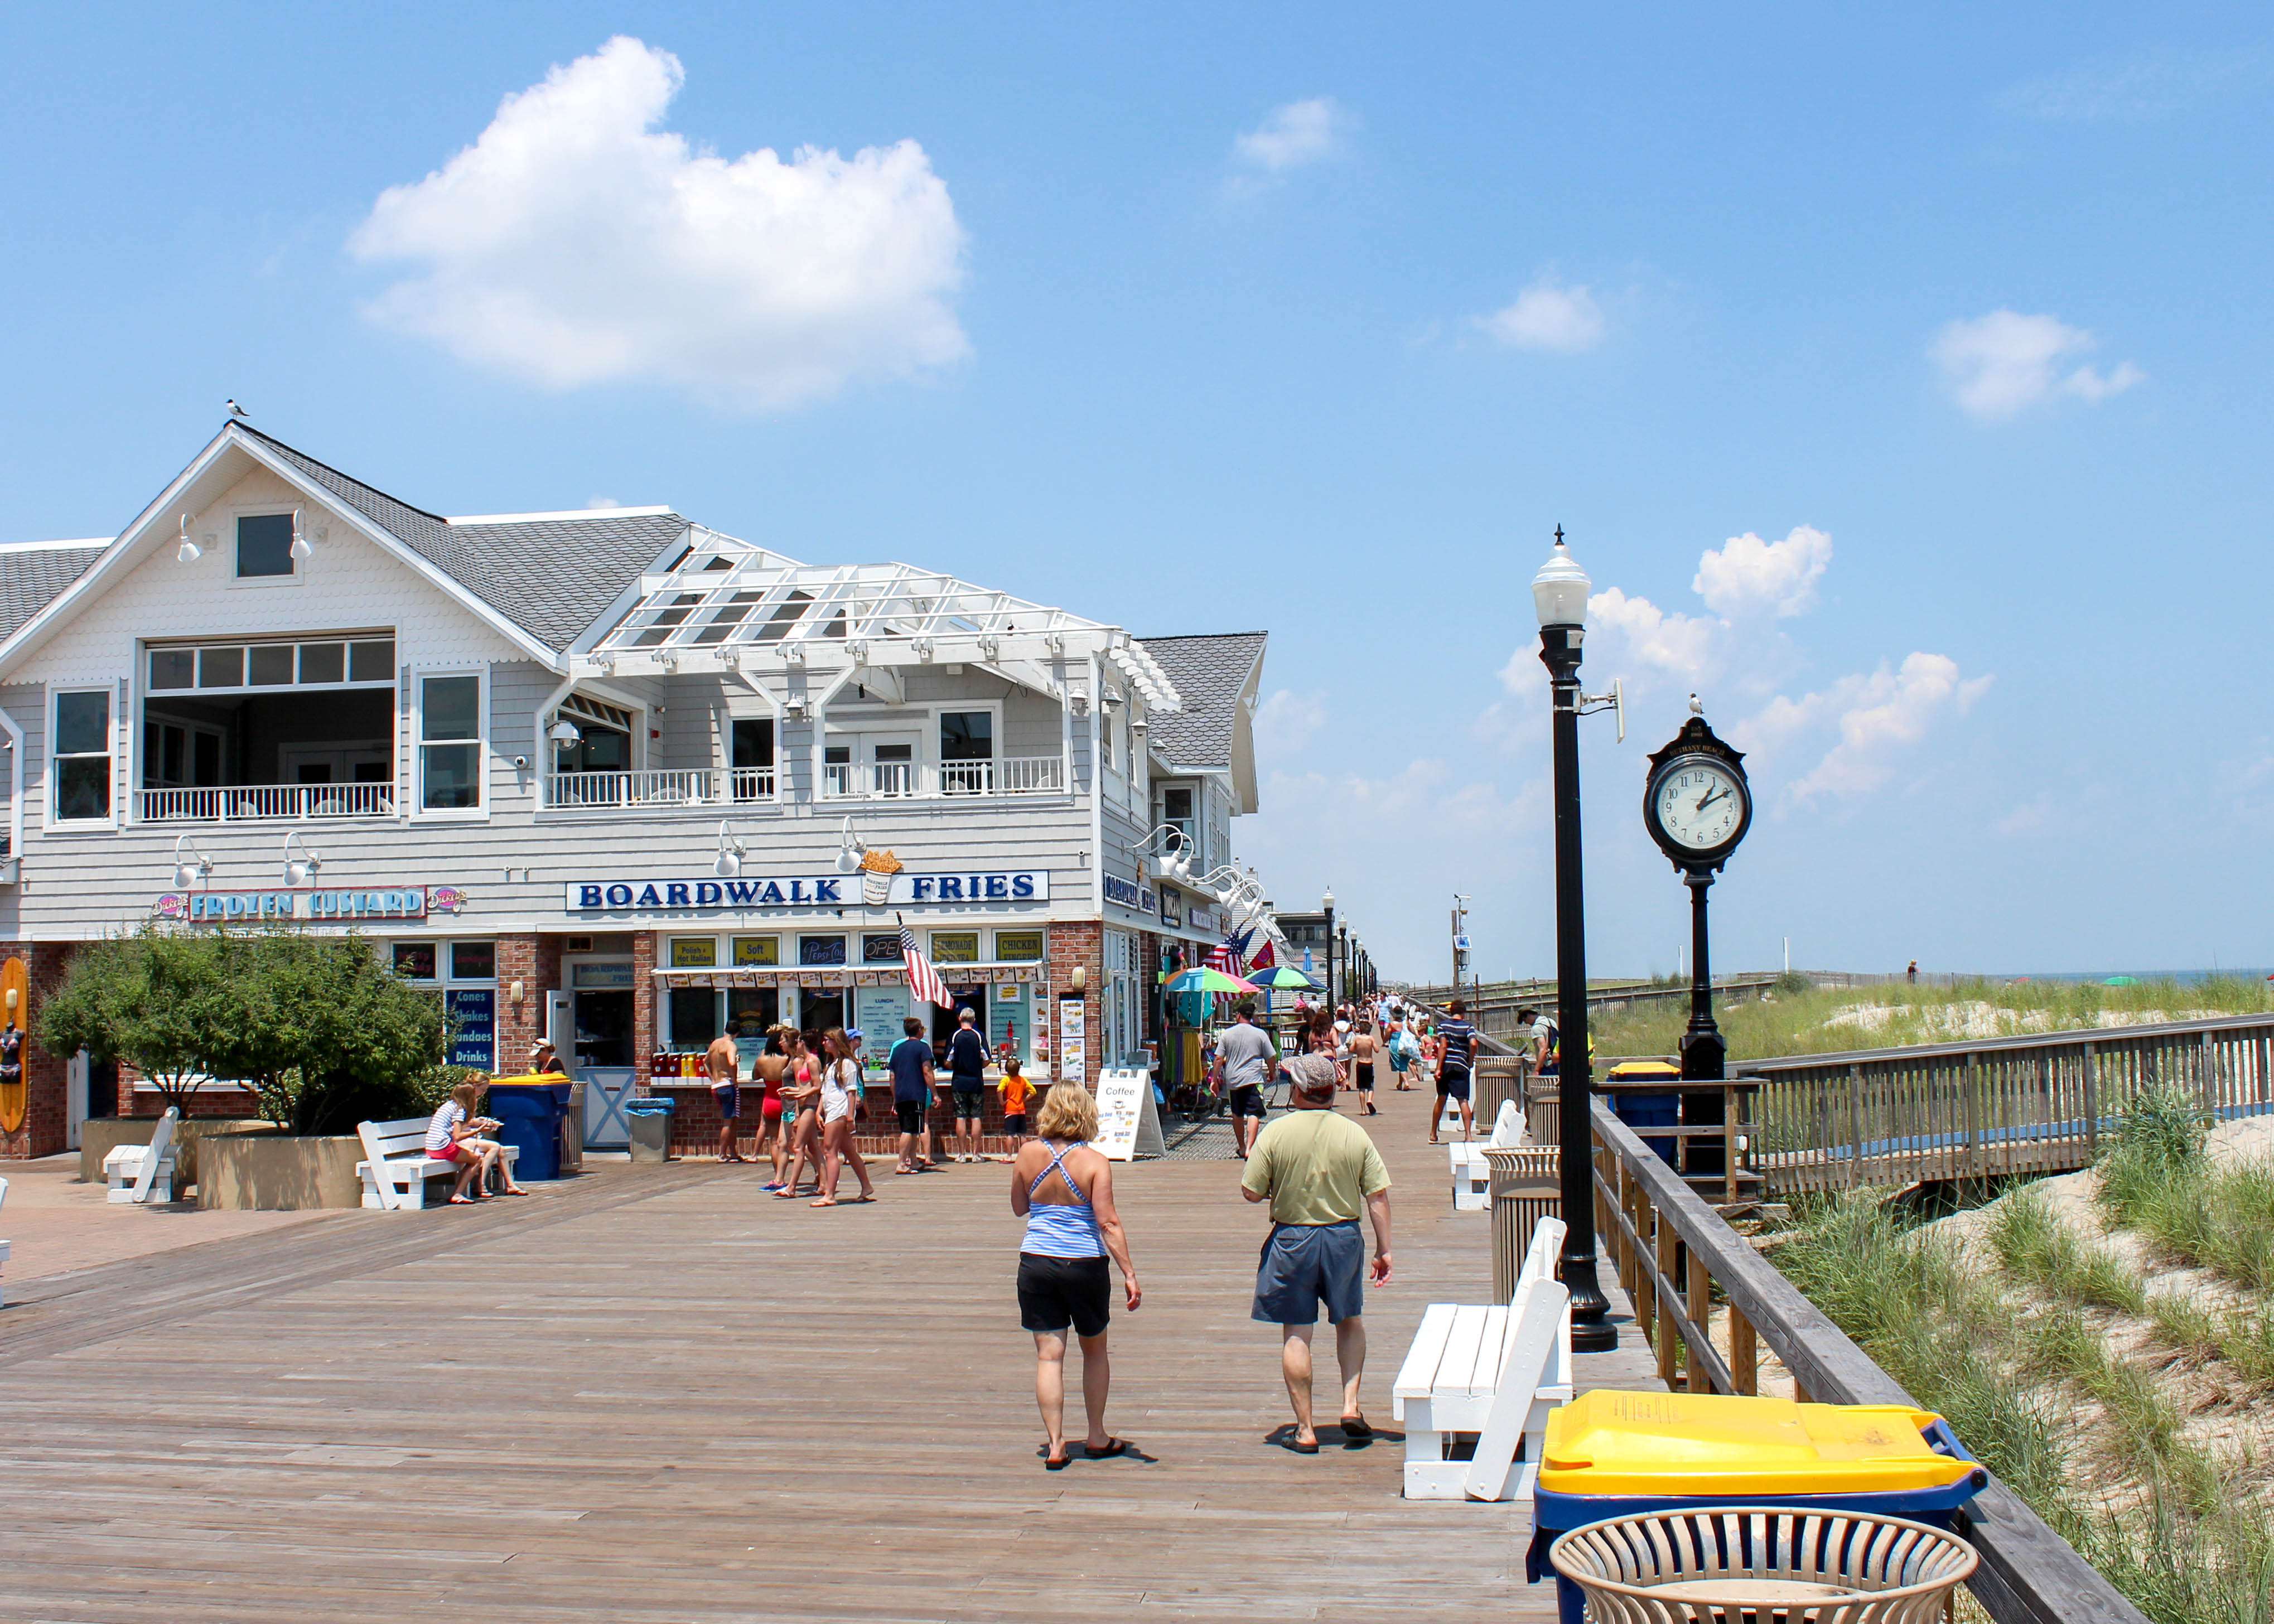 It's a place for wasting away an afternoon by the ocean or an evening on the boardwalk.{ } (Image: Courtesy VisitDelaware.com)